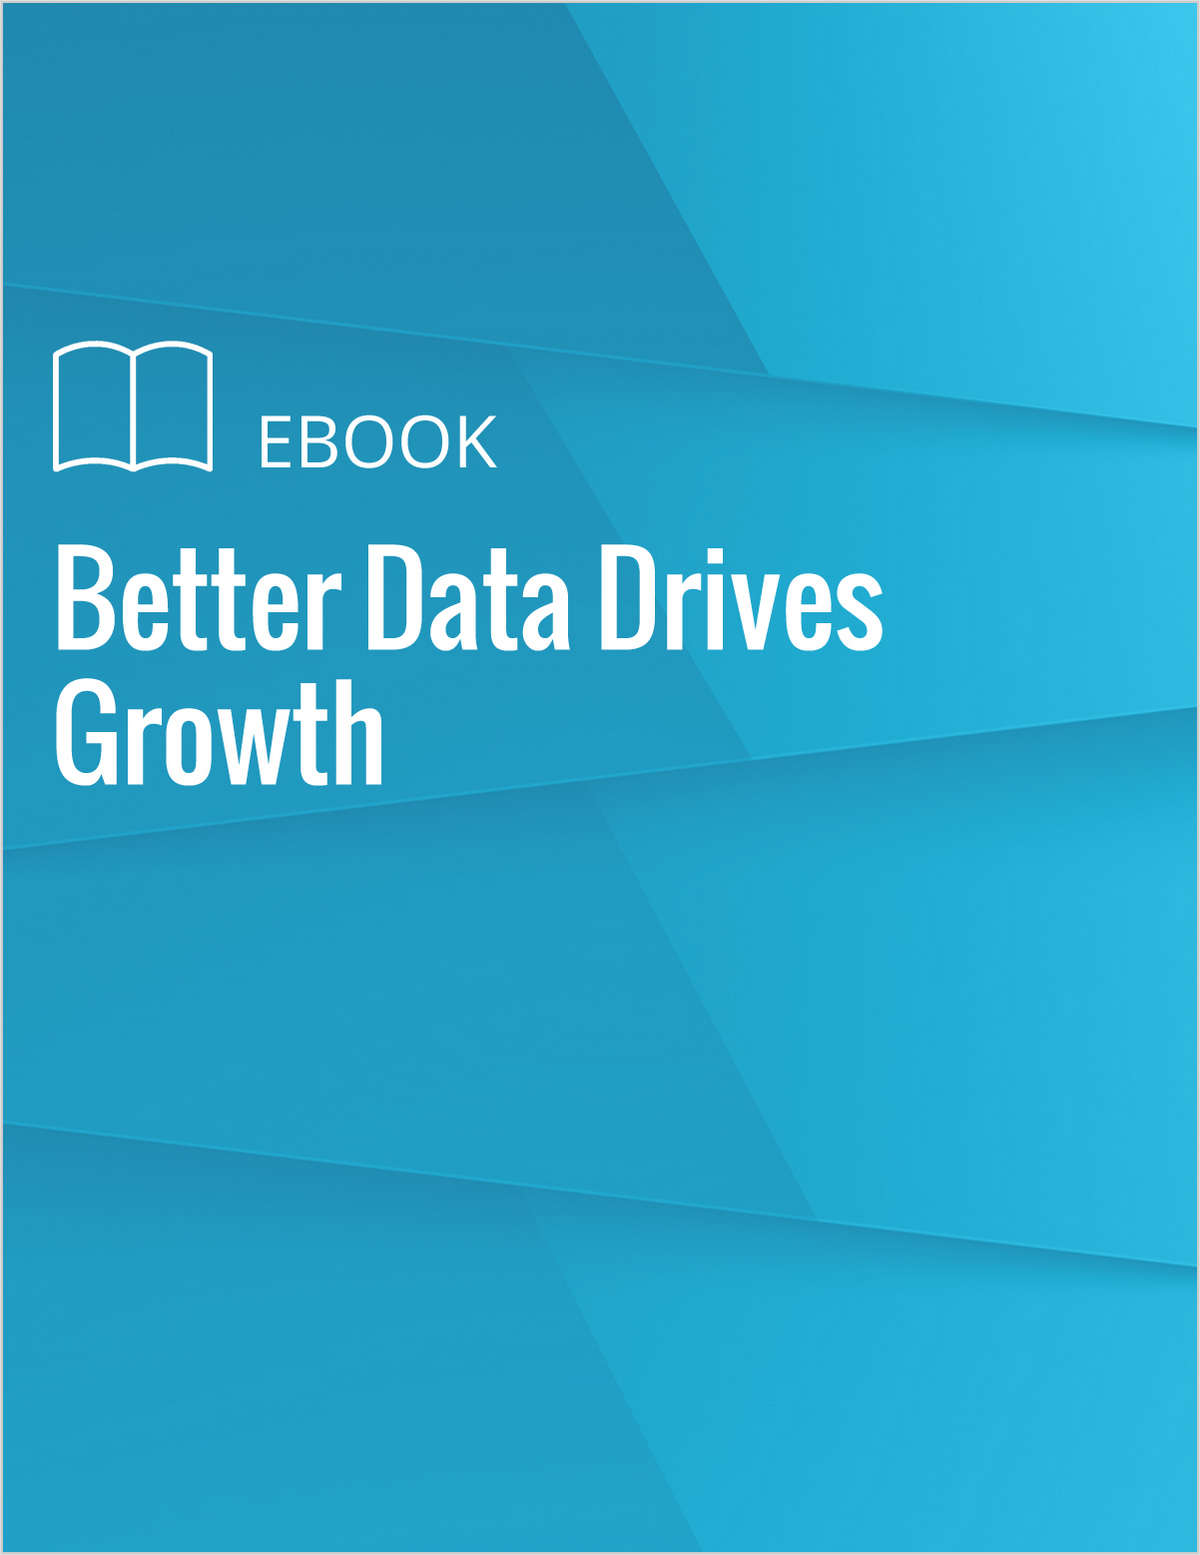 Better Data Drives Growth